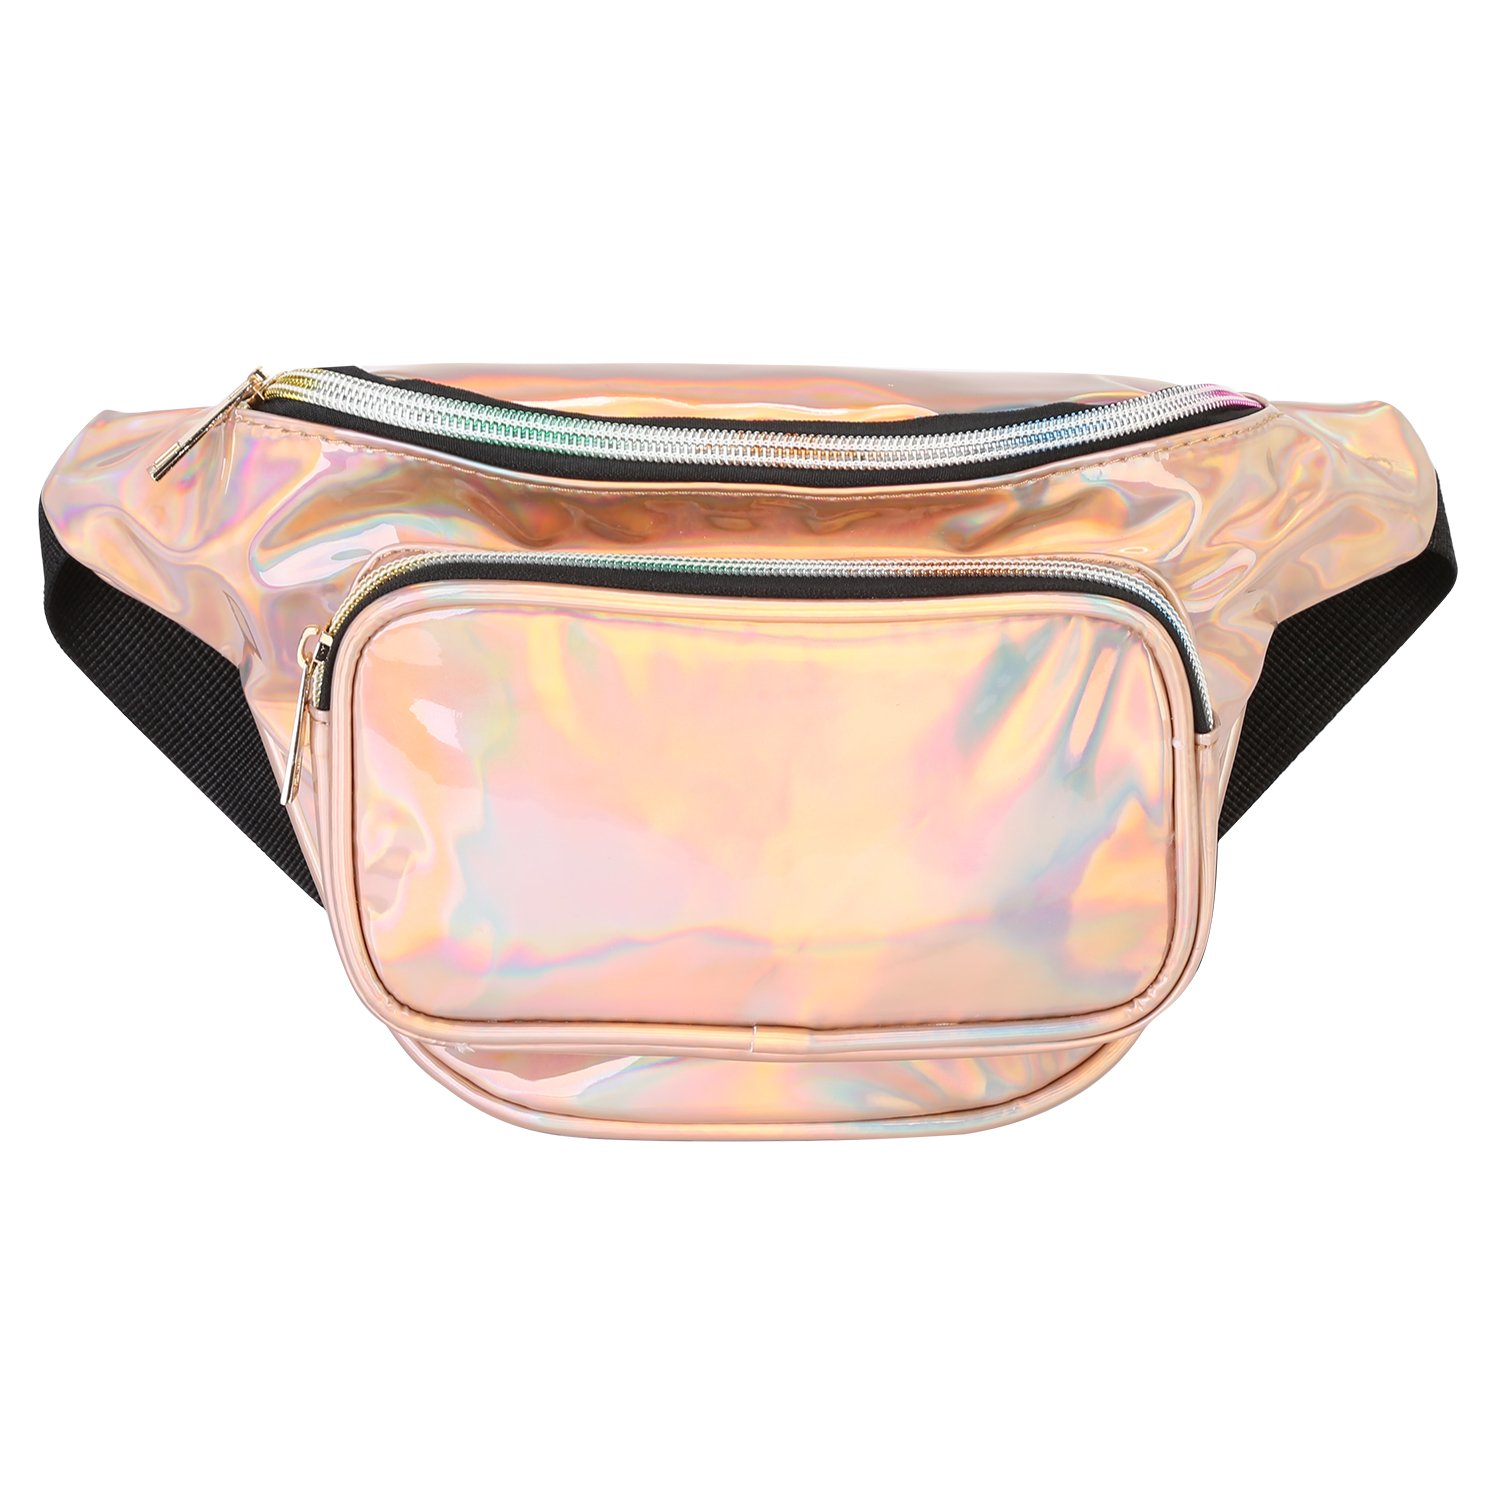 Promover Hologram Water Resistant Shiny Neon Fanny Bag for Women Rave Festival Bum Travel Waist Pack(Champagne Gold)